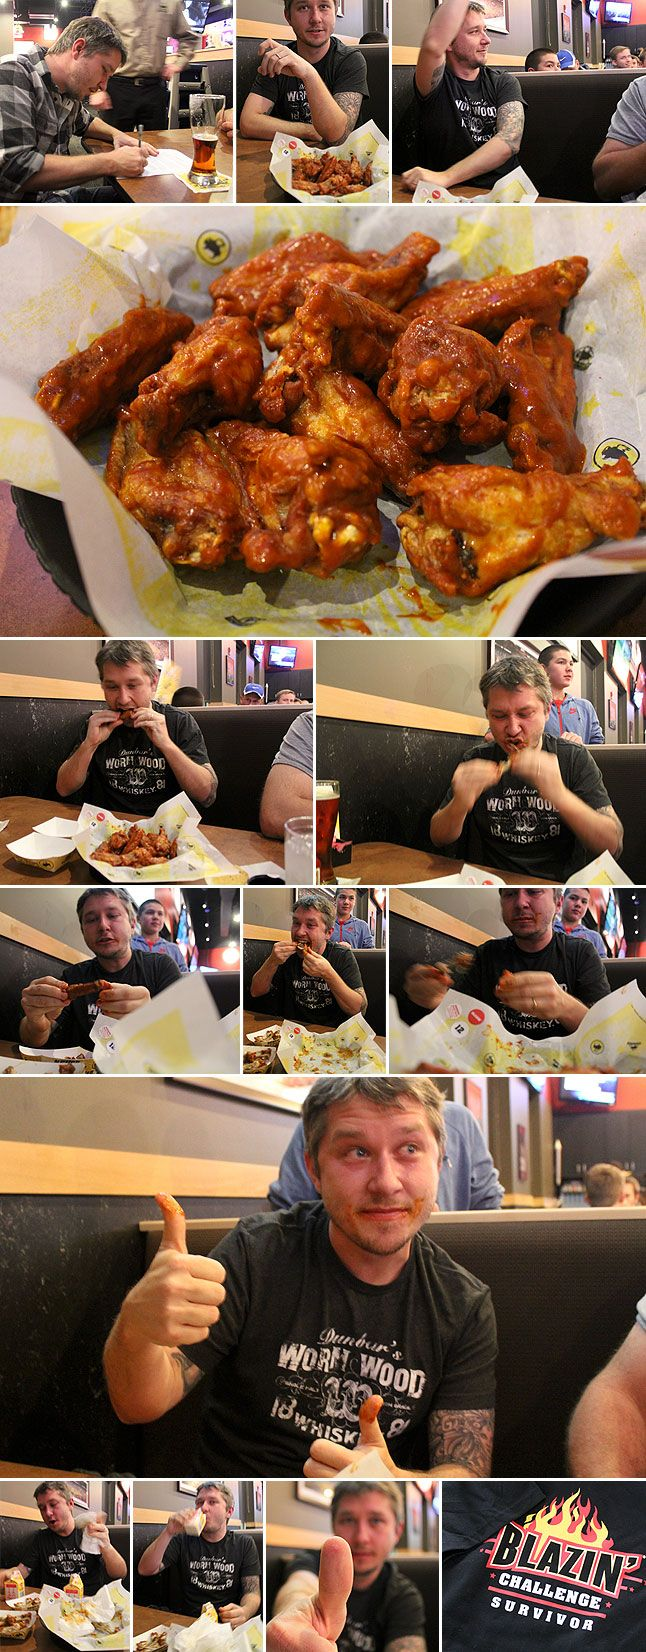 """The """"Blazin' Wing Challenge"""" at Buffalo Wild Wings: A Photostory"""